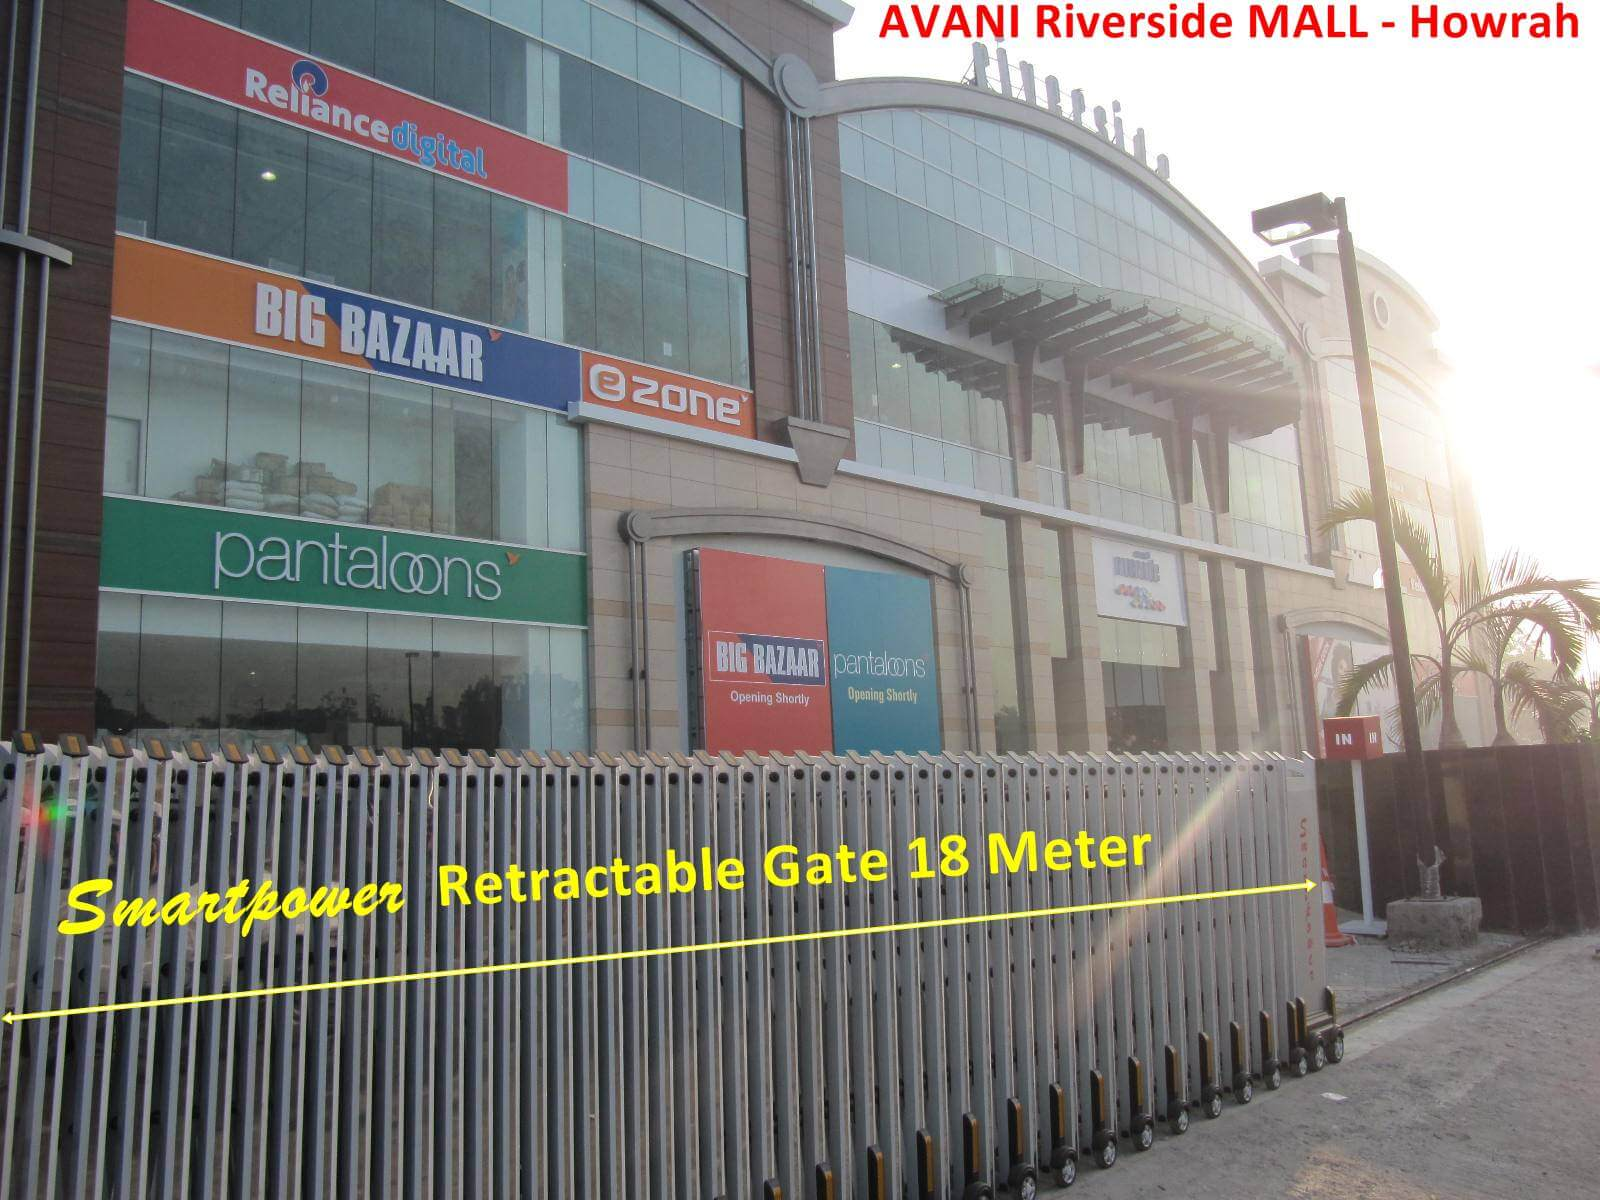 Retractable Gates Telescopic Gate Motorized Gate